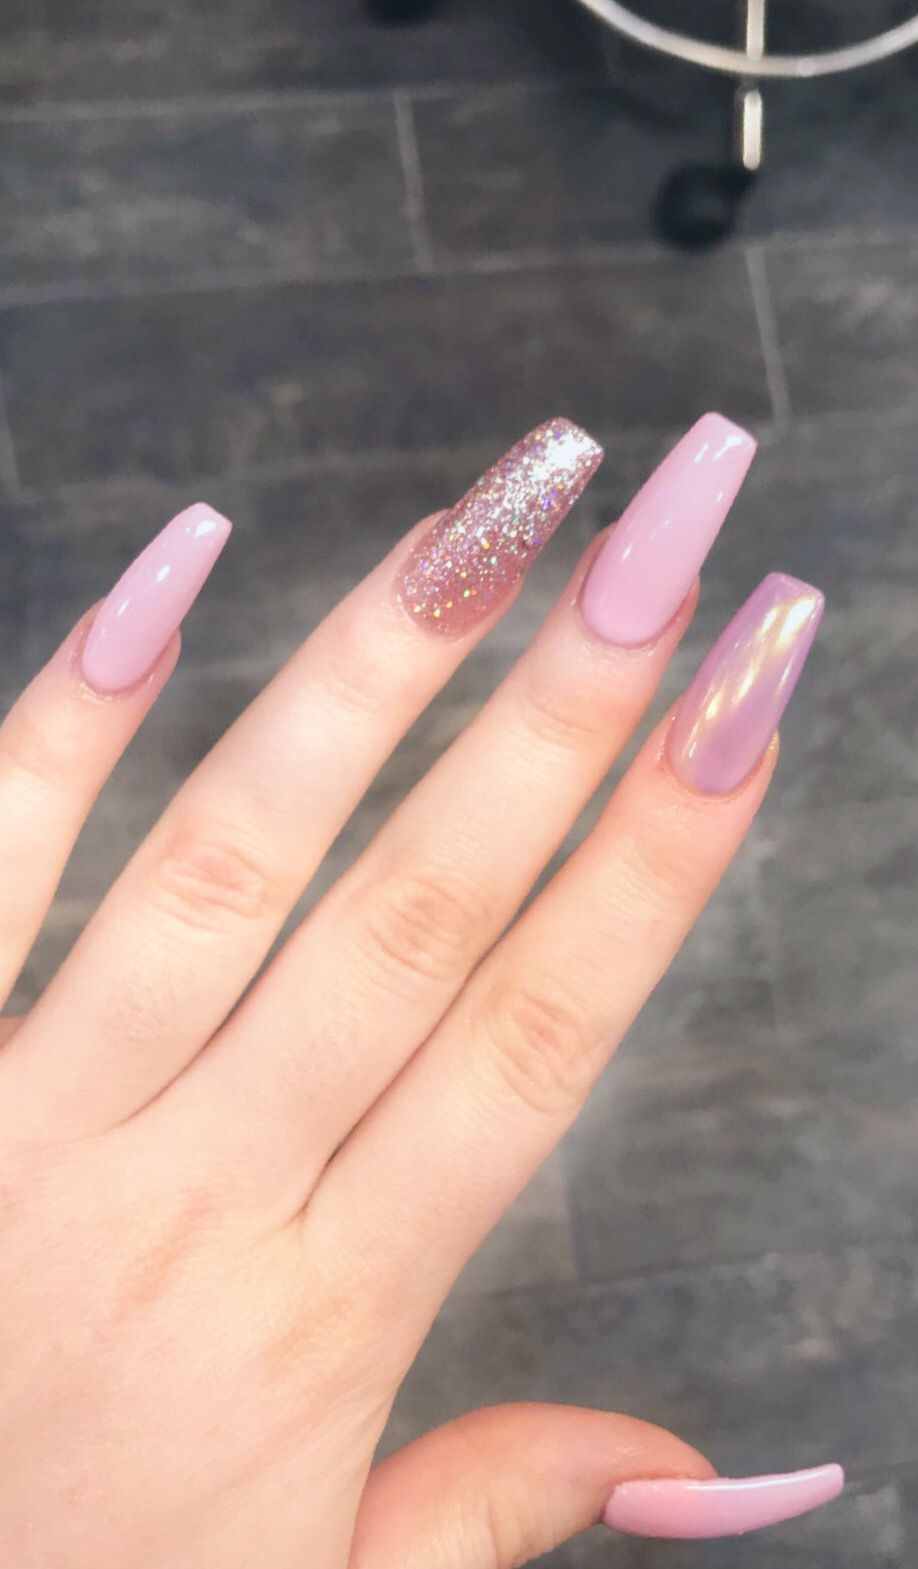 Nails Pink Glitter Chrome Holographic Valentines Long Acrylic Acrylic Nails Coffin Pink Nail Designs Valentines Pink Nail Designs